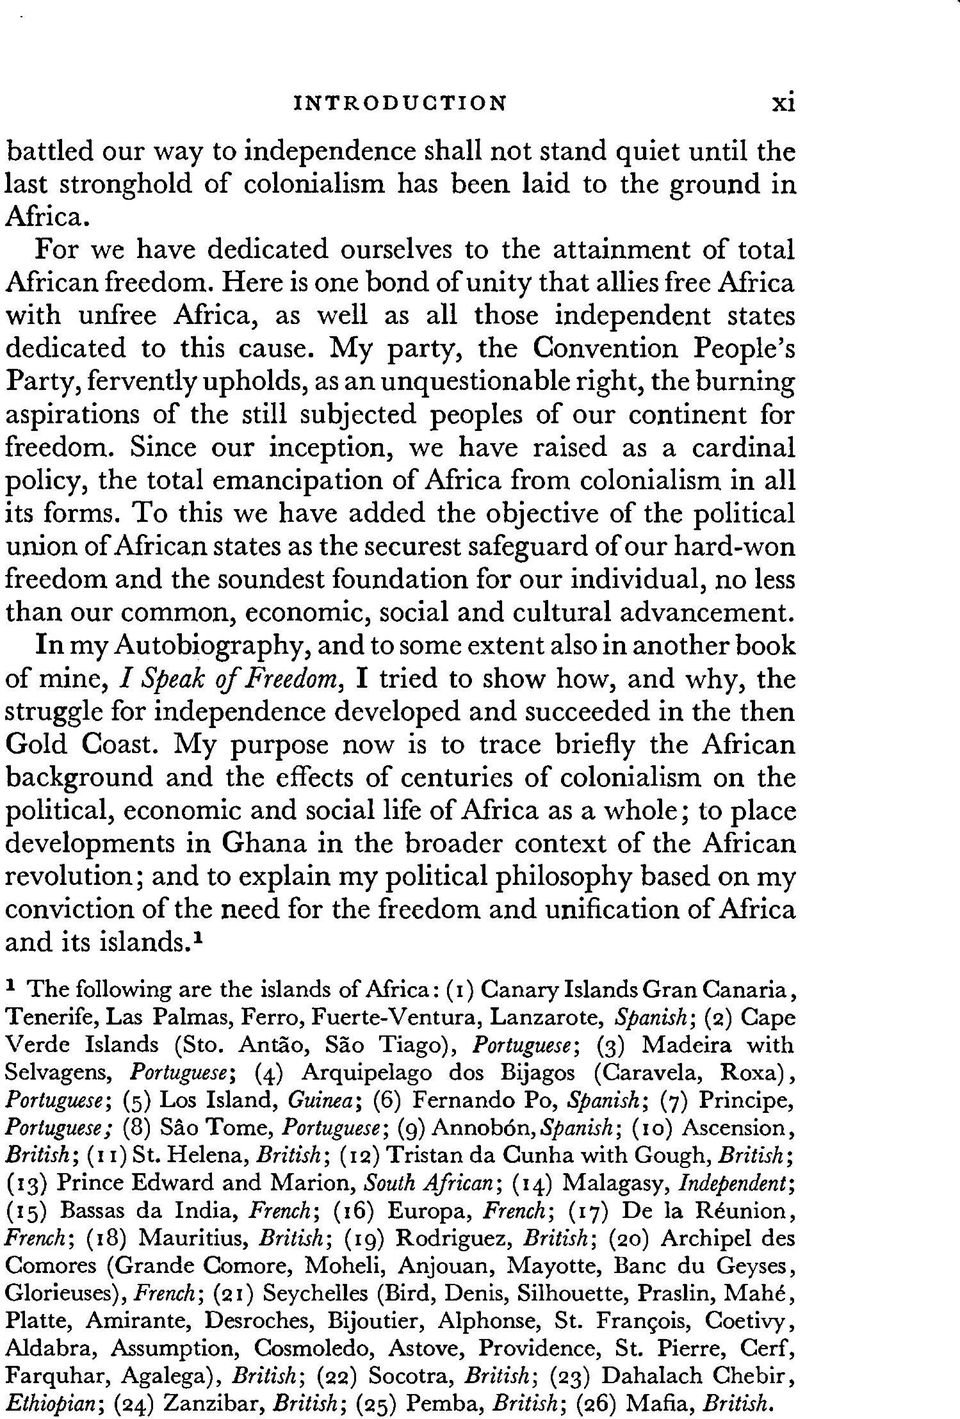 Here is one bond of unity th at allies free Africa w ith unfree Africa, as well as all those independent states dedicated to this cause.